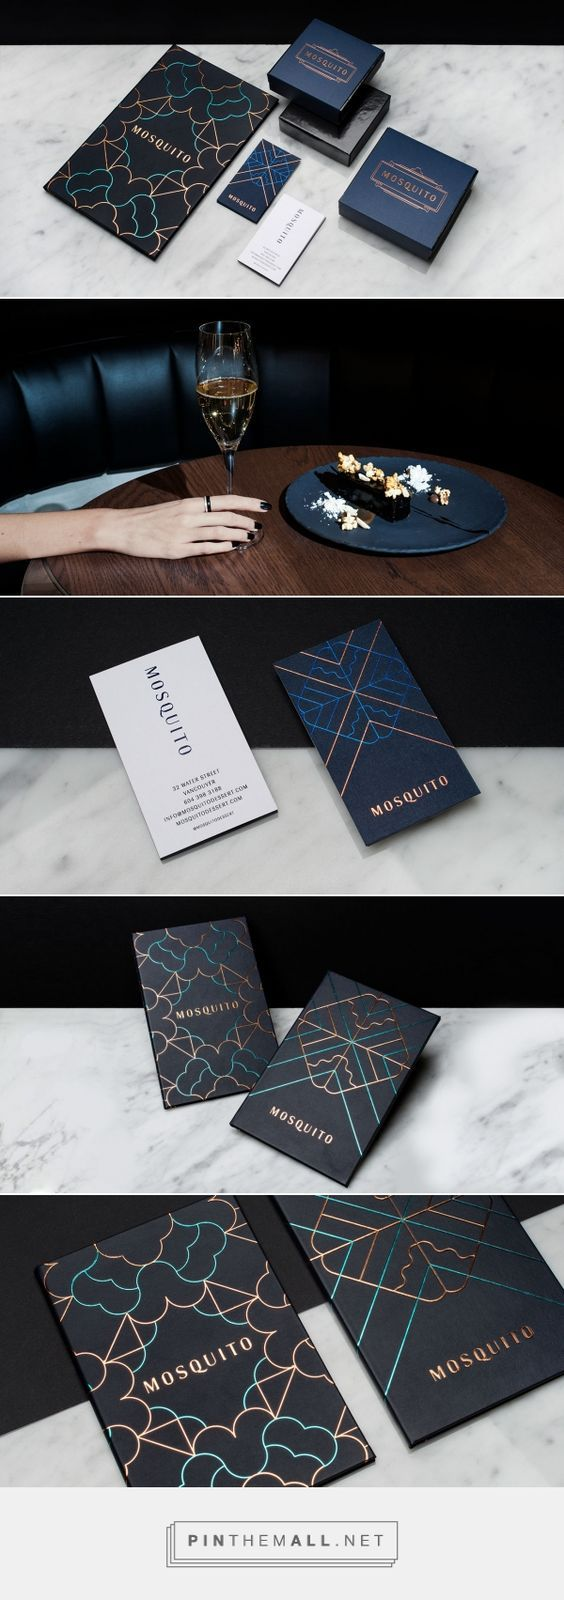 (38) Mosquito by Glasfurd & Walker Design... - a grouped images picture - Pin Them All | • IDENTITY • | Pinterest